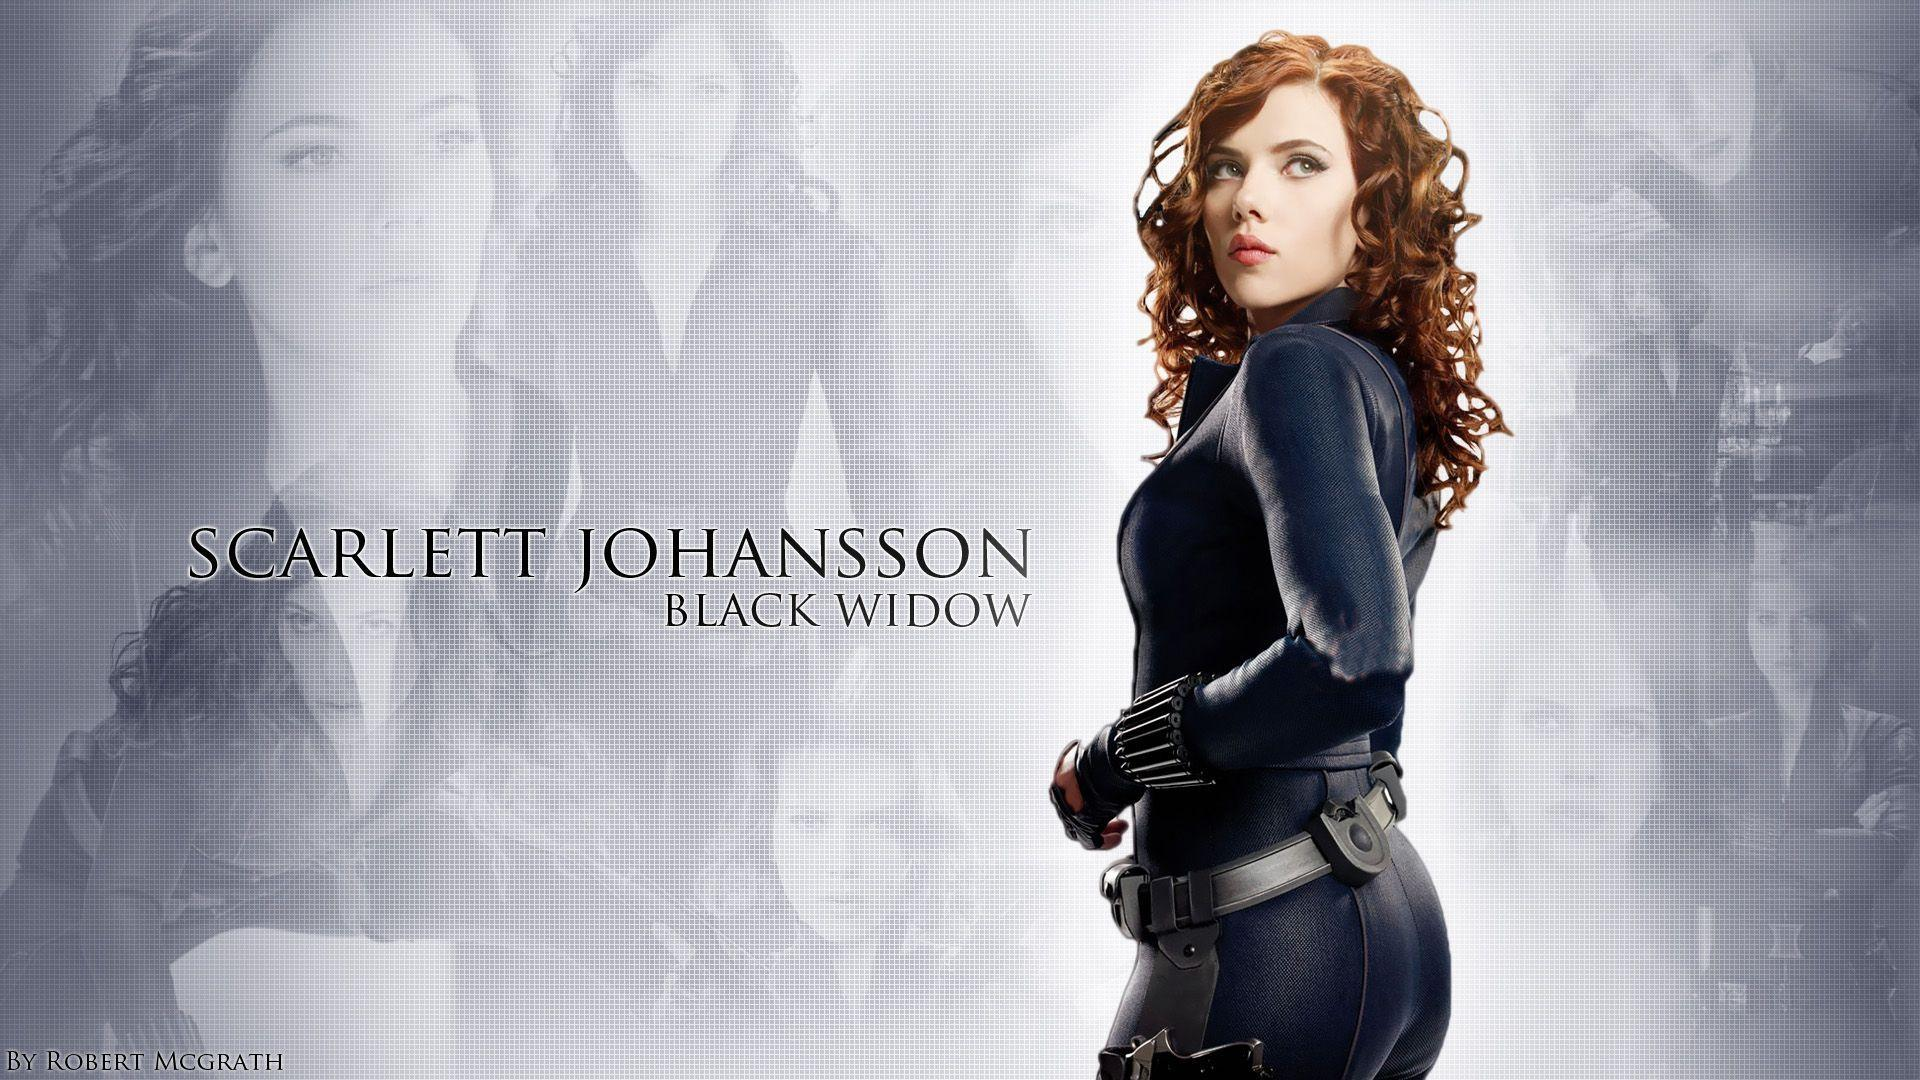 Scarlett Johansson Wallpapers, Hollywood Actress Images